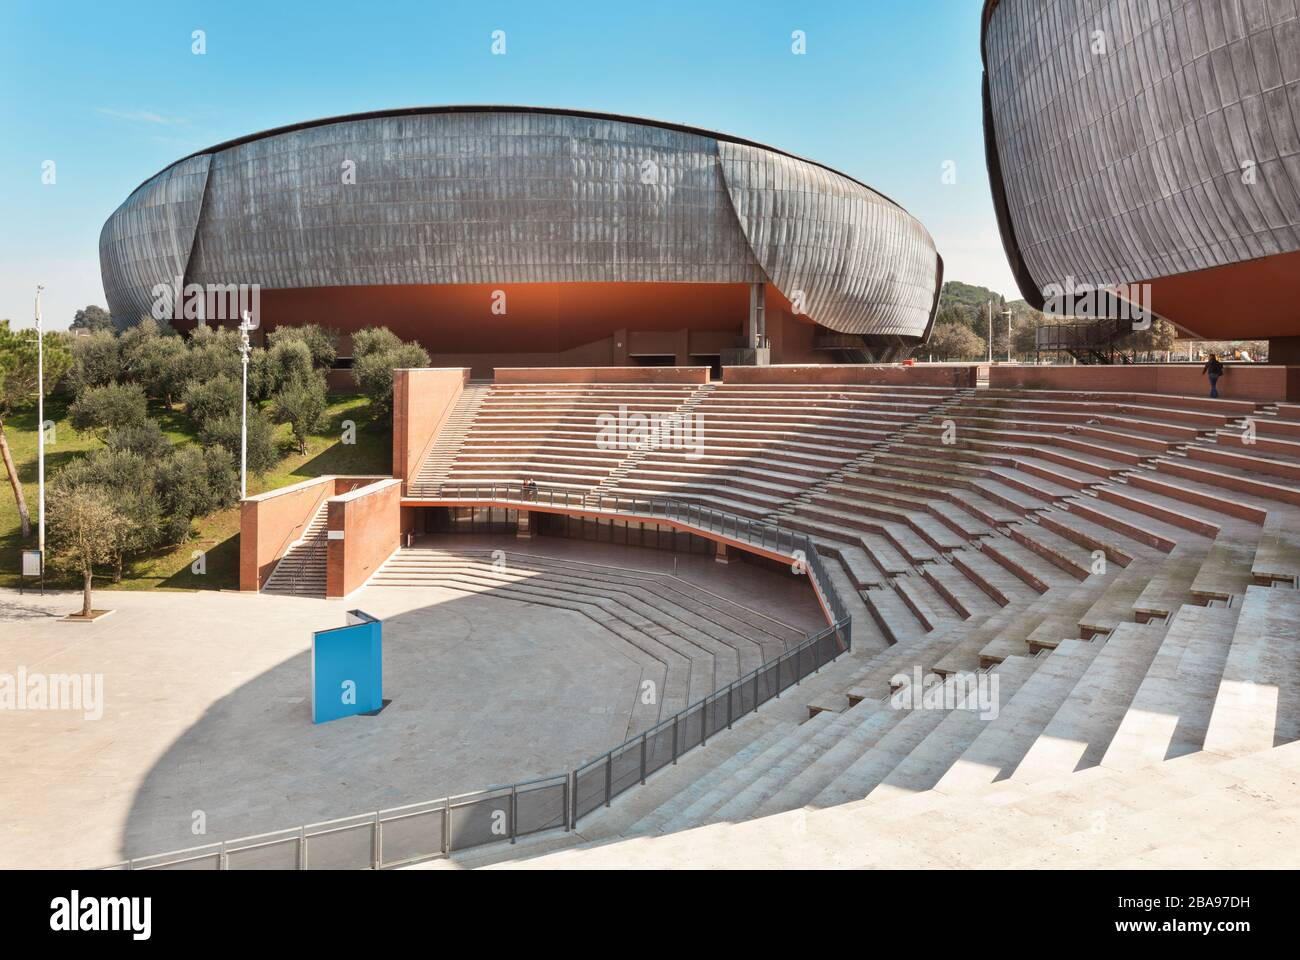 ROME, ITALY - MARCH 14, 2015: View from external of the Auditorium Parco della Musica, structure dedicated entirely to art. Architect, Renzo Piano Stock Photo